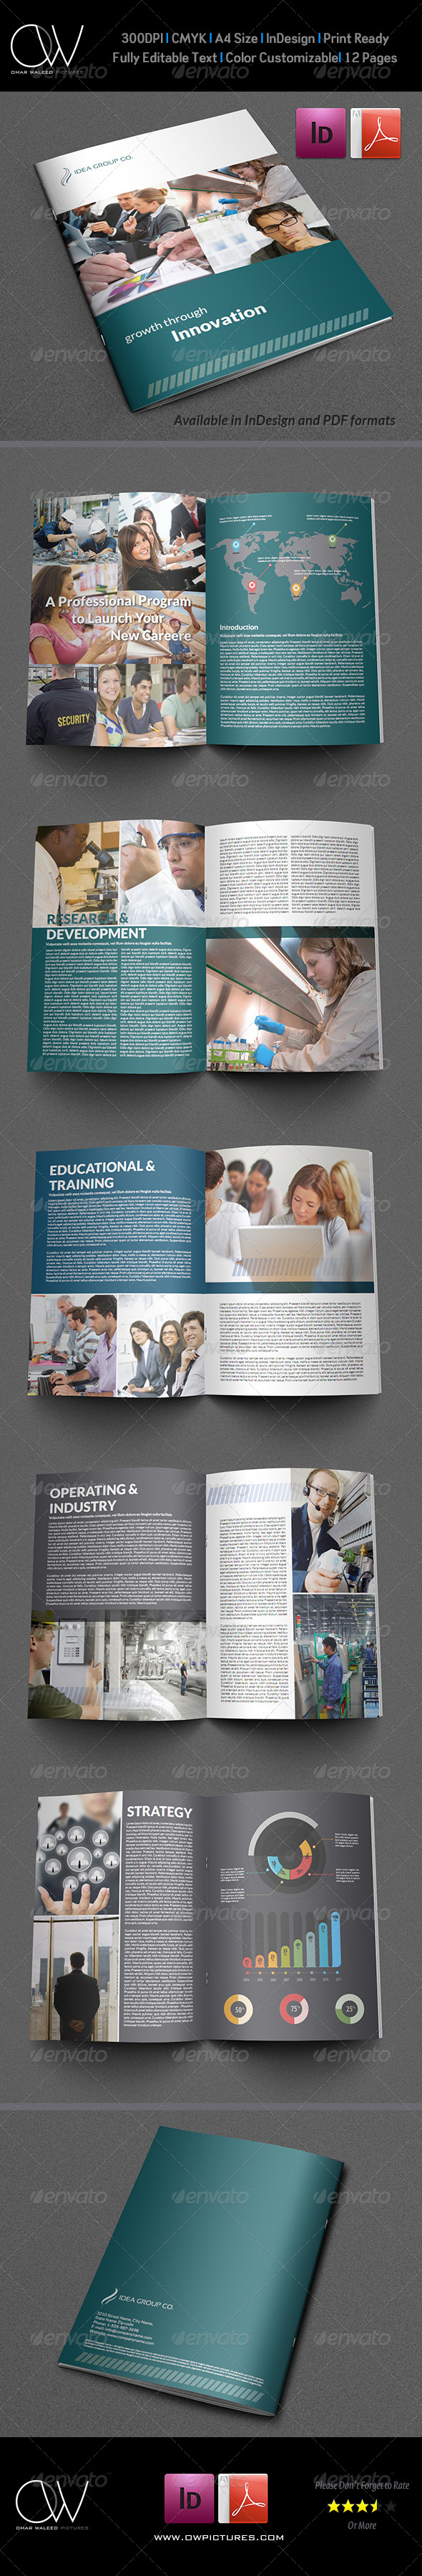 GraphicRiver Company Brochure Template Vol.13 12 Pages 5964014